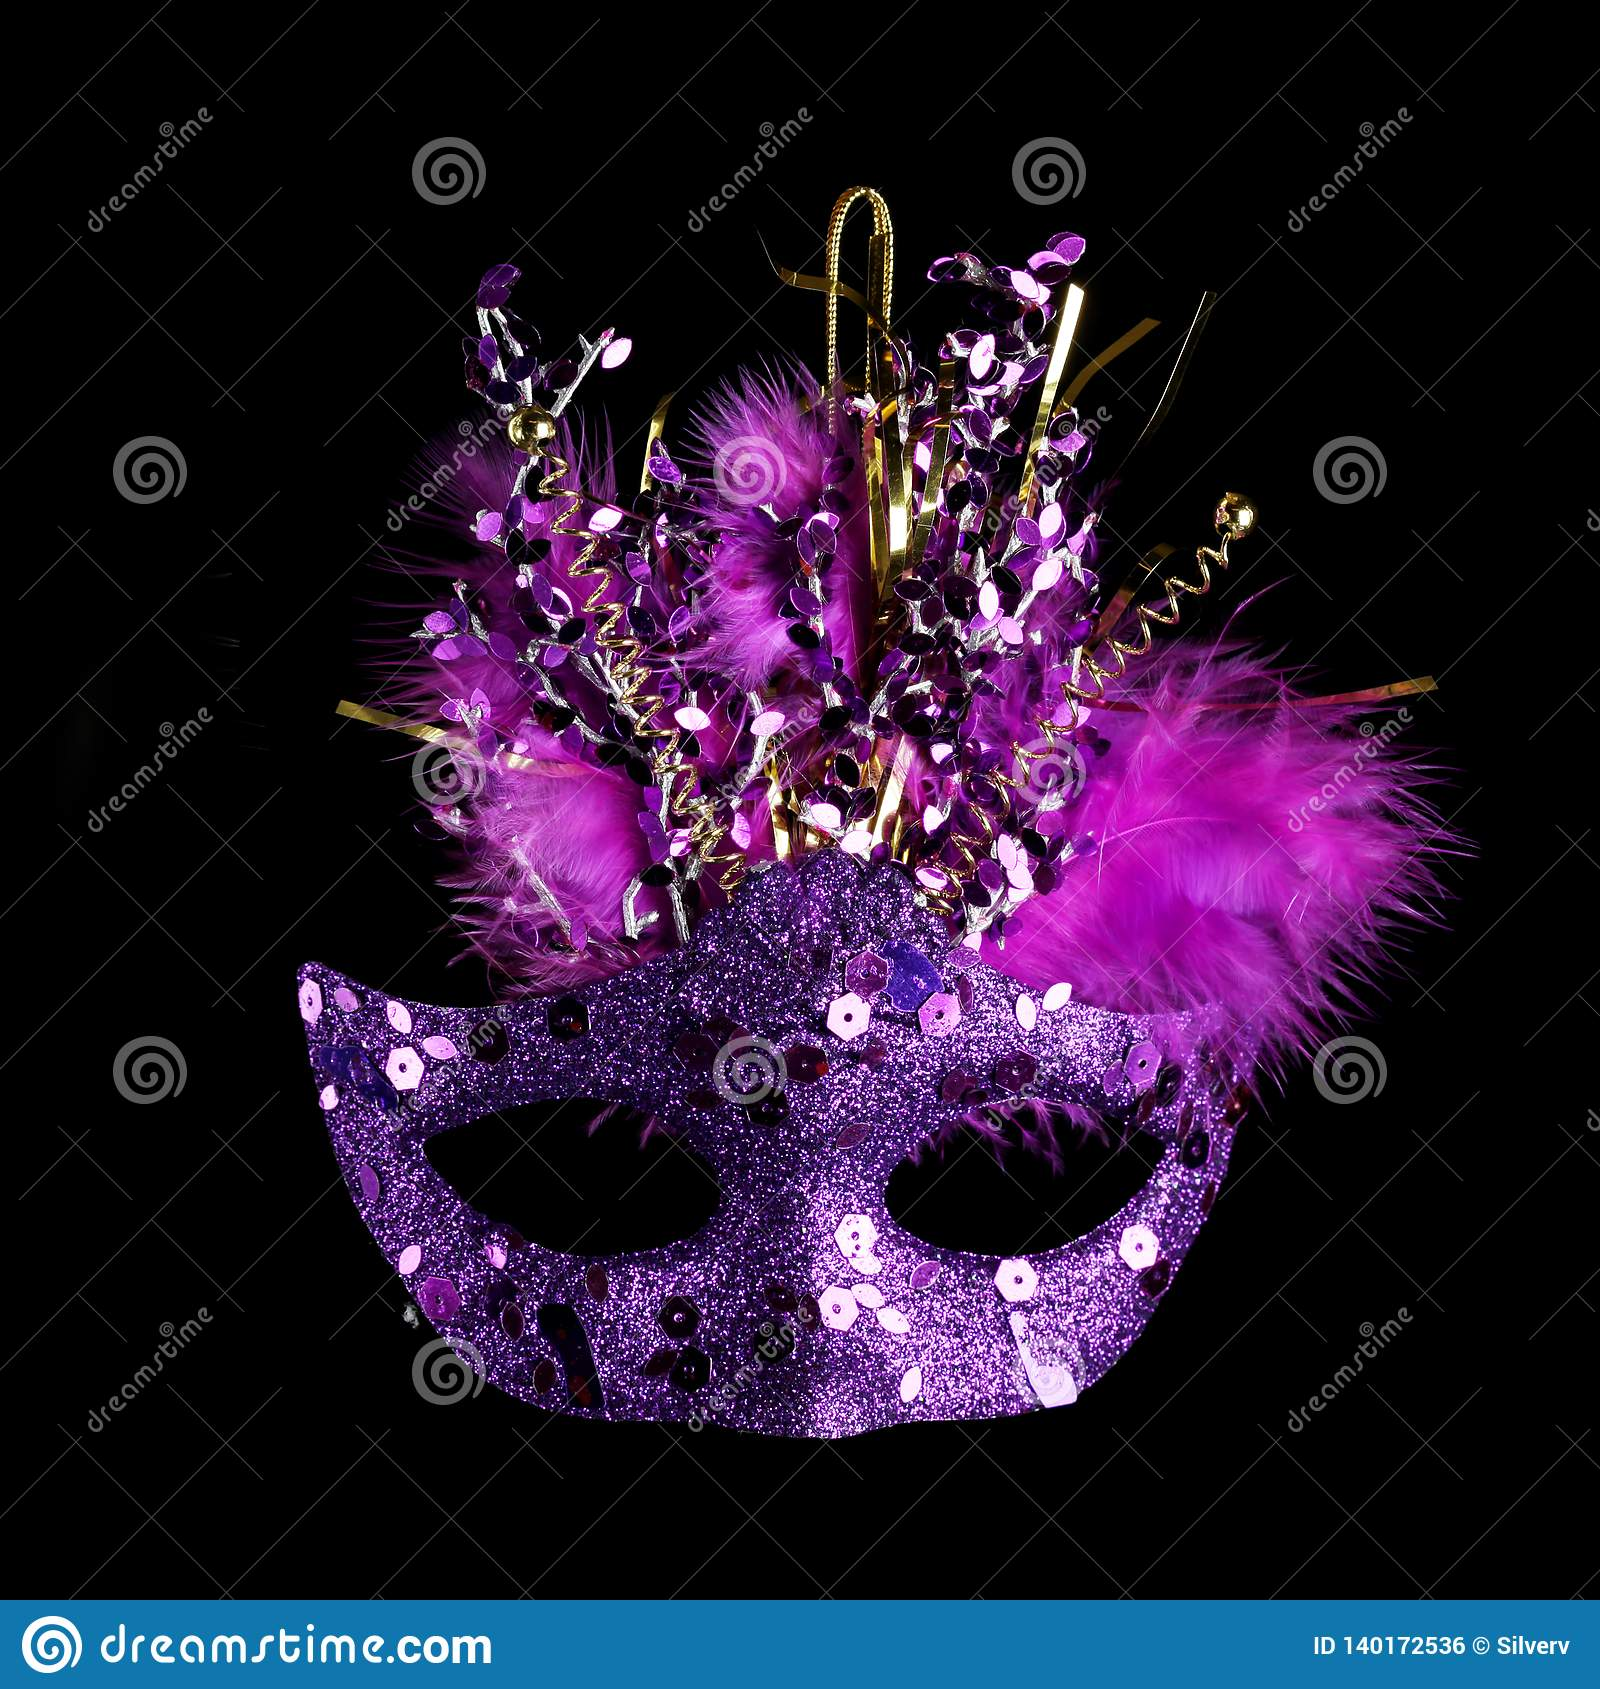 Colorful Mardi Gras mask isolated on black